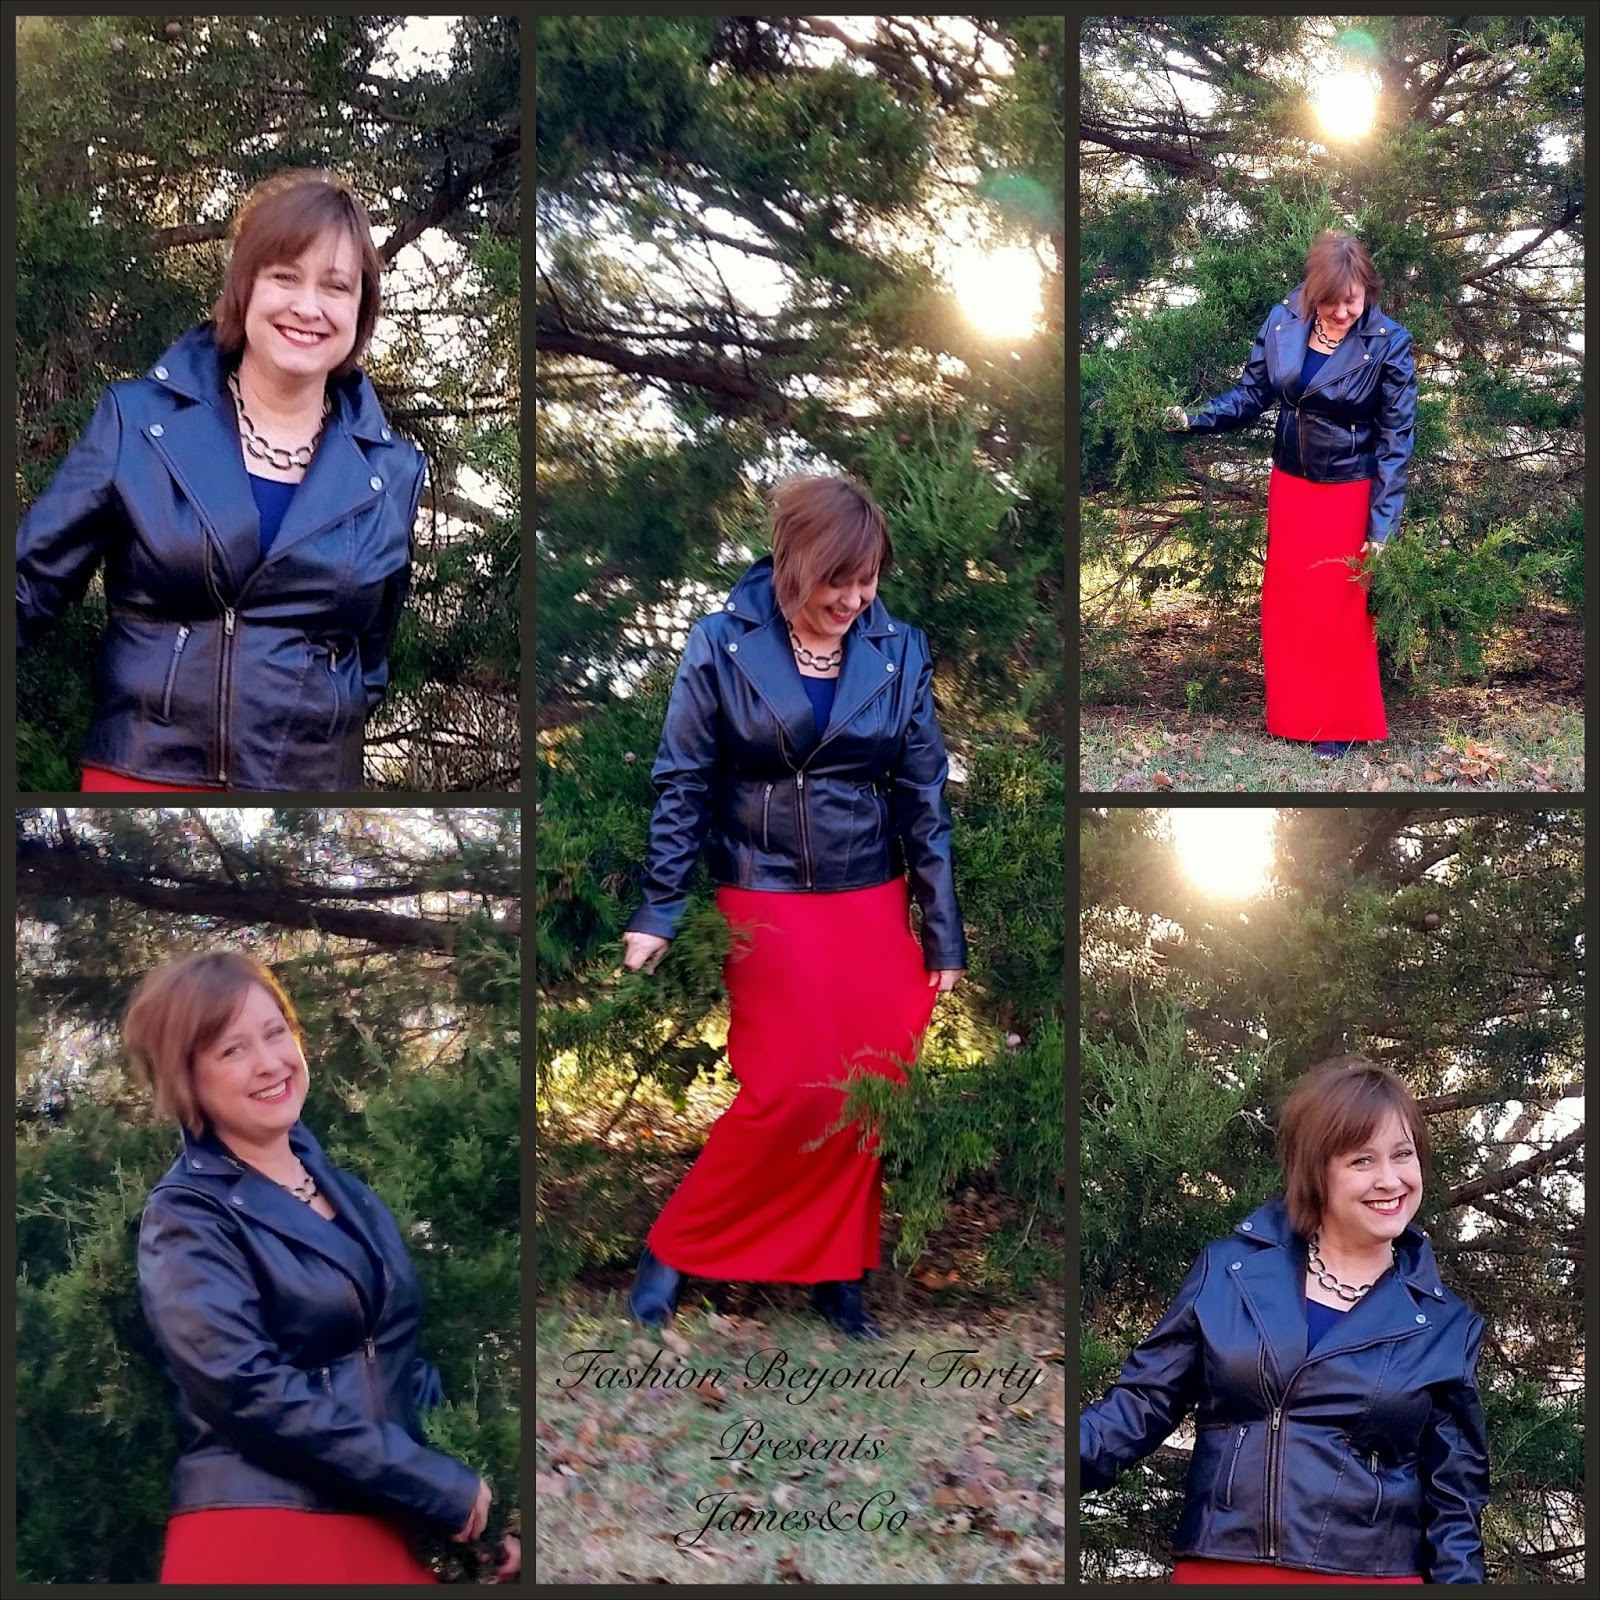 Fashion Beyond Forty James&Co Faux Leather Jacket Review